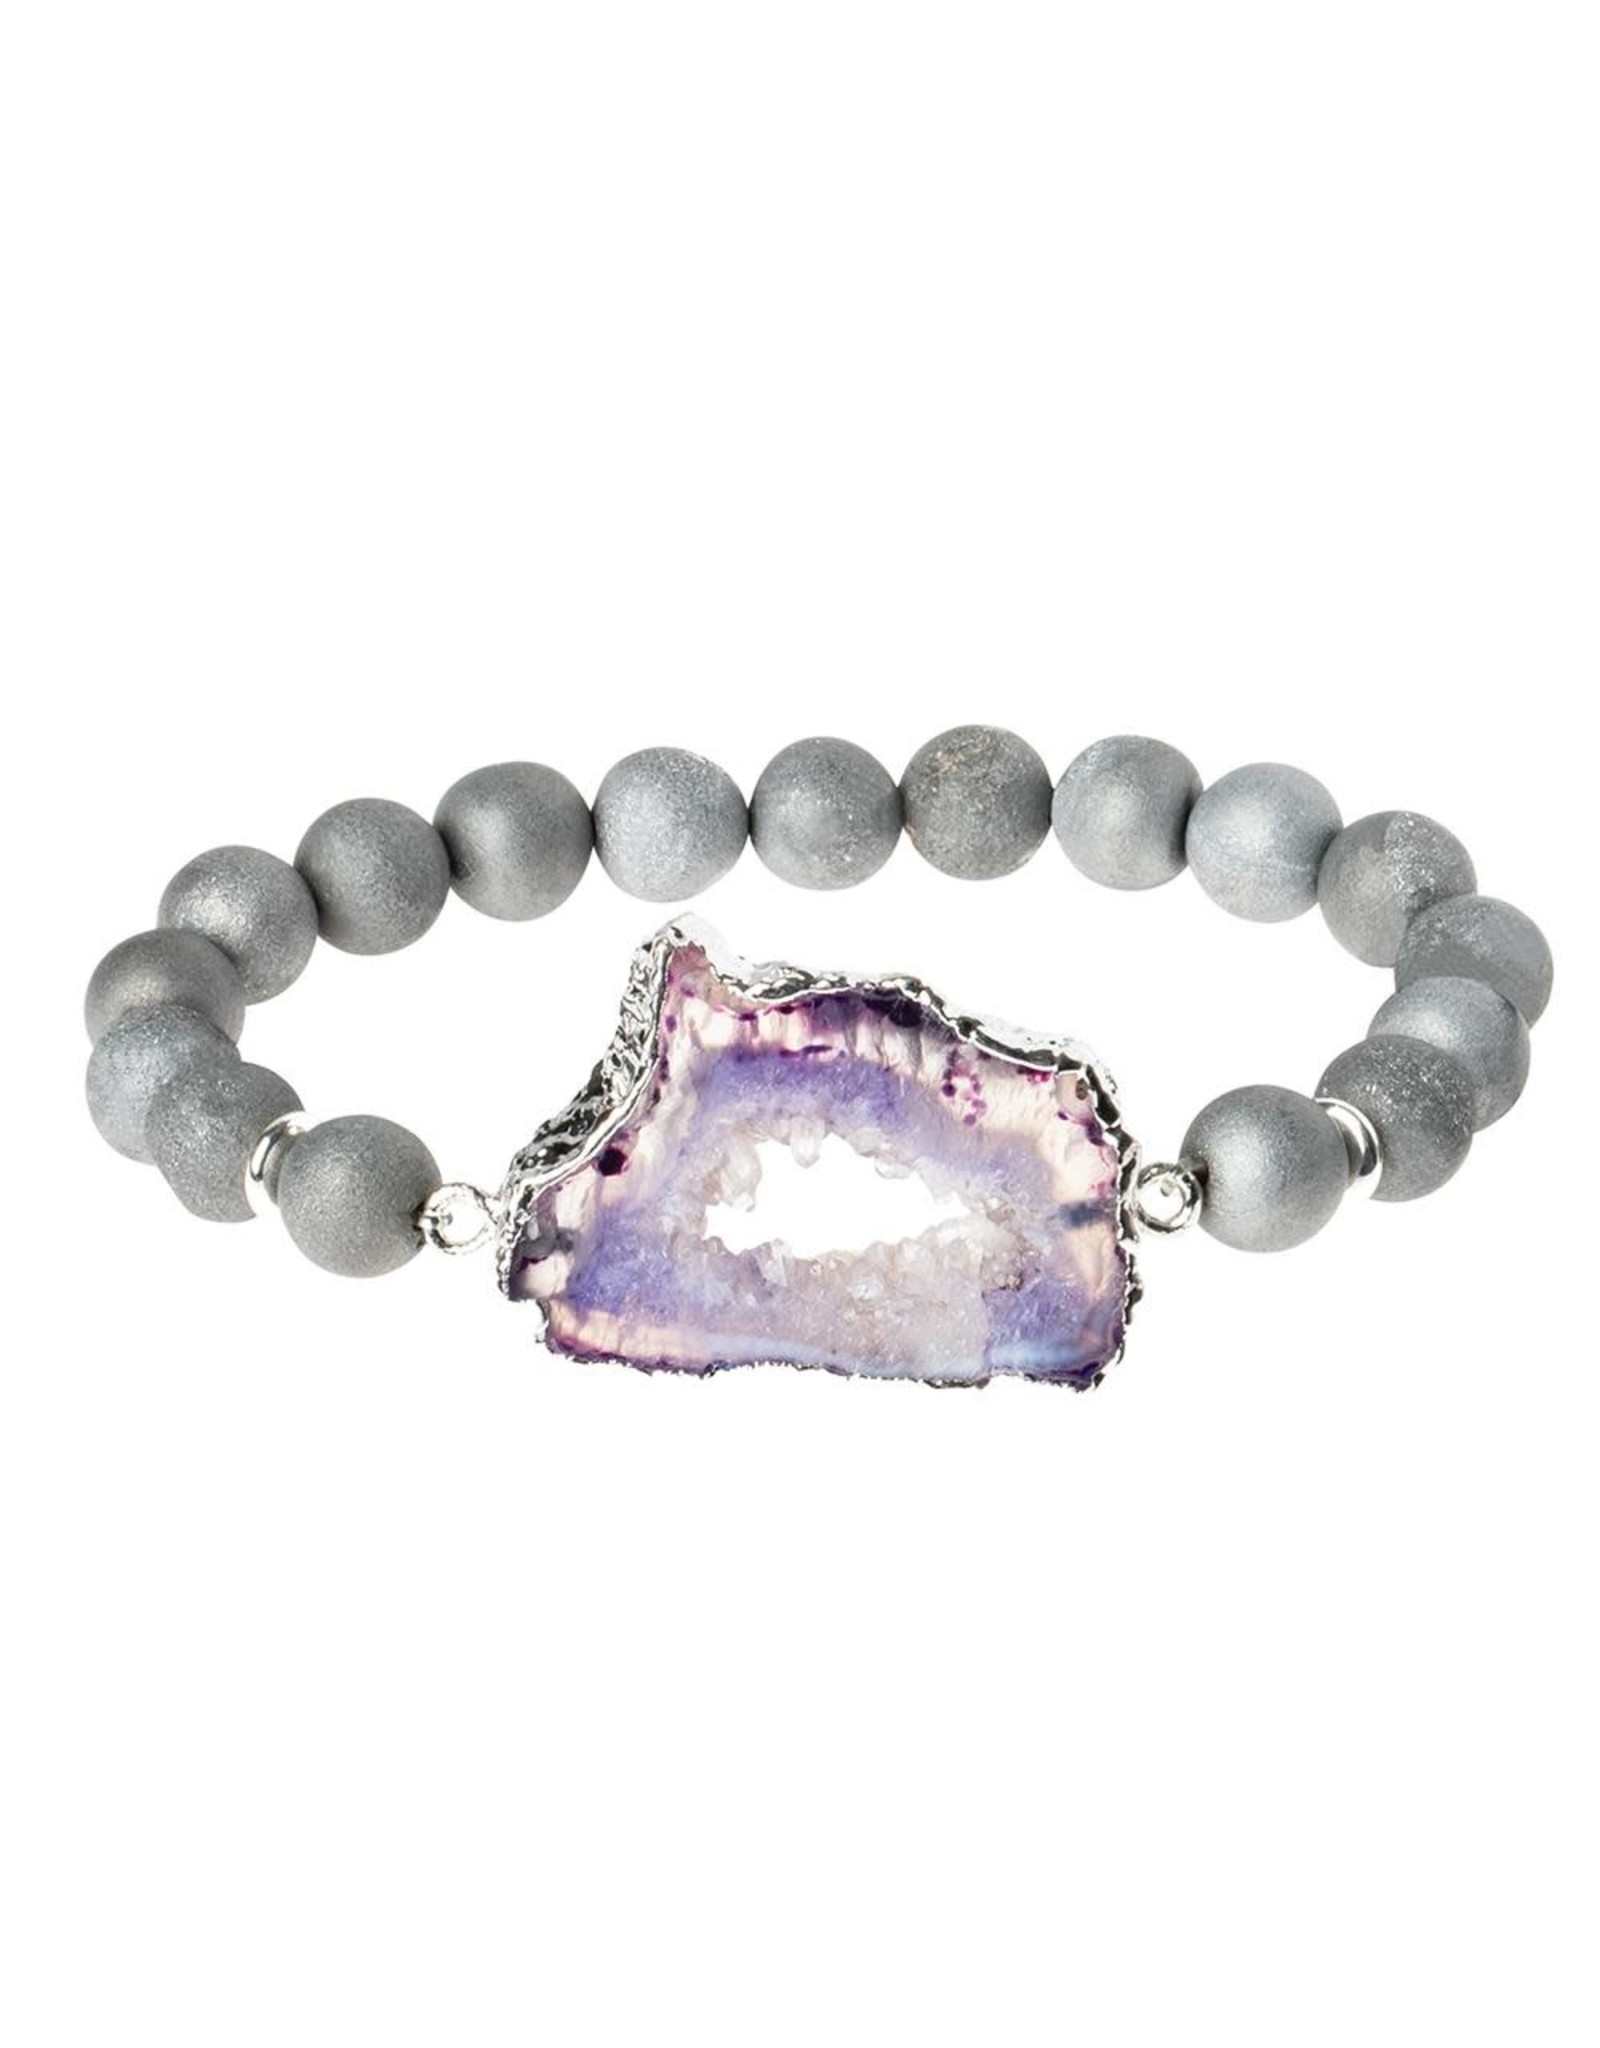 Scout SG006 Geode Stack Bracelet:  Gray/Plum/Silver